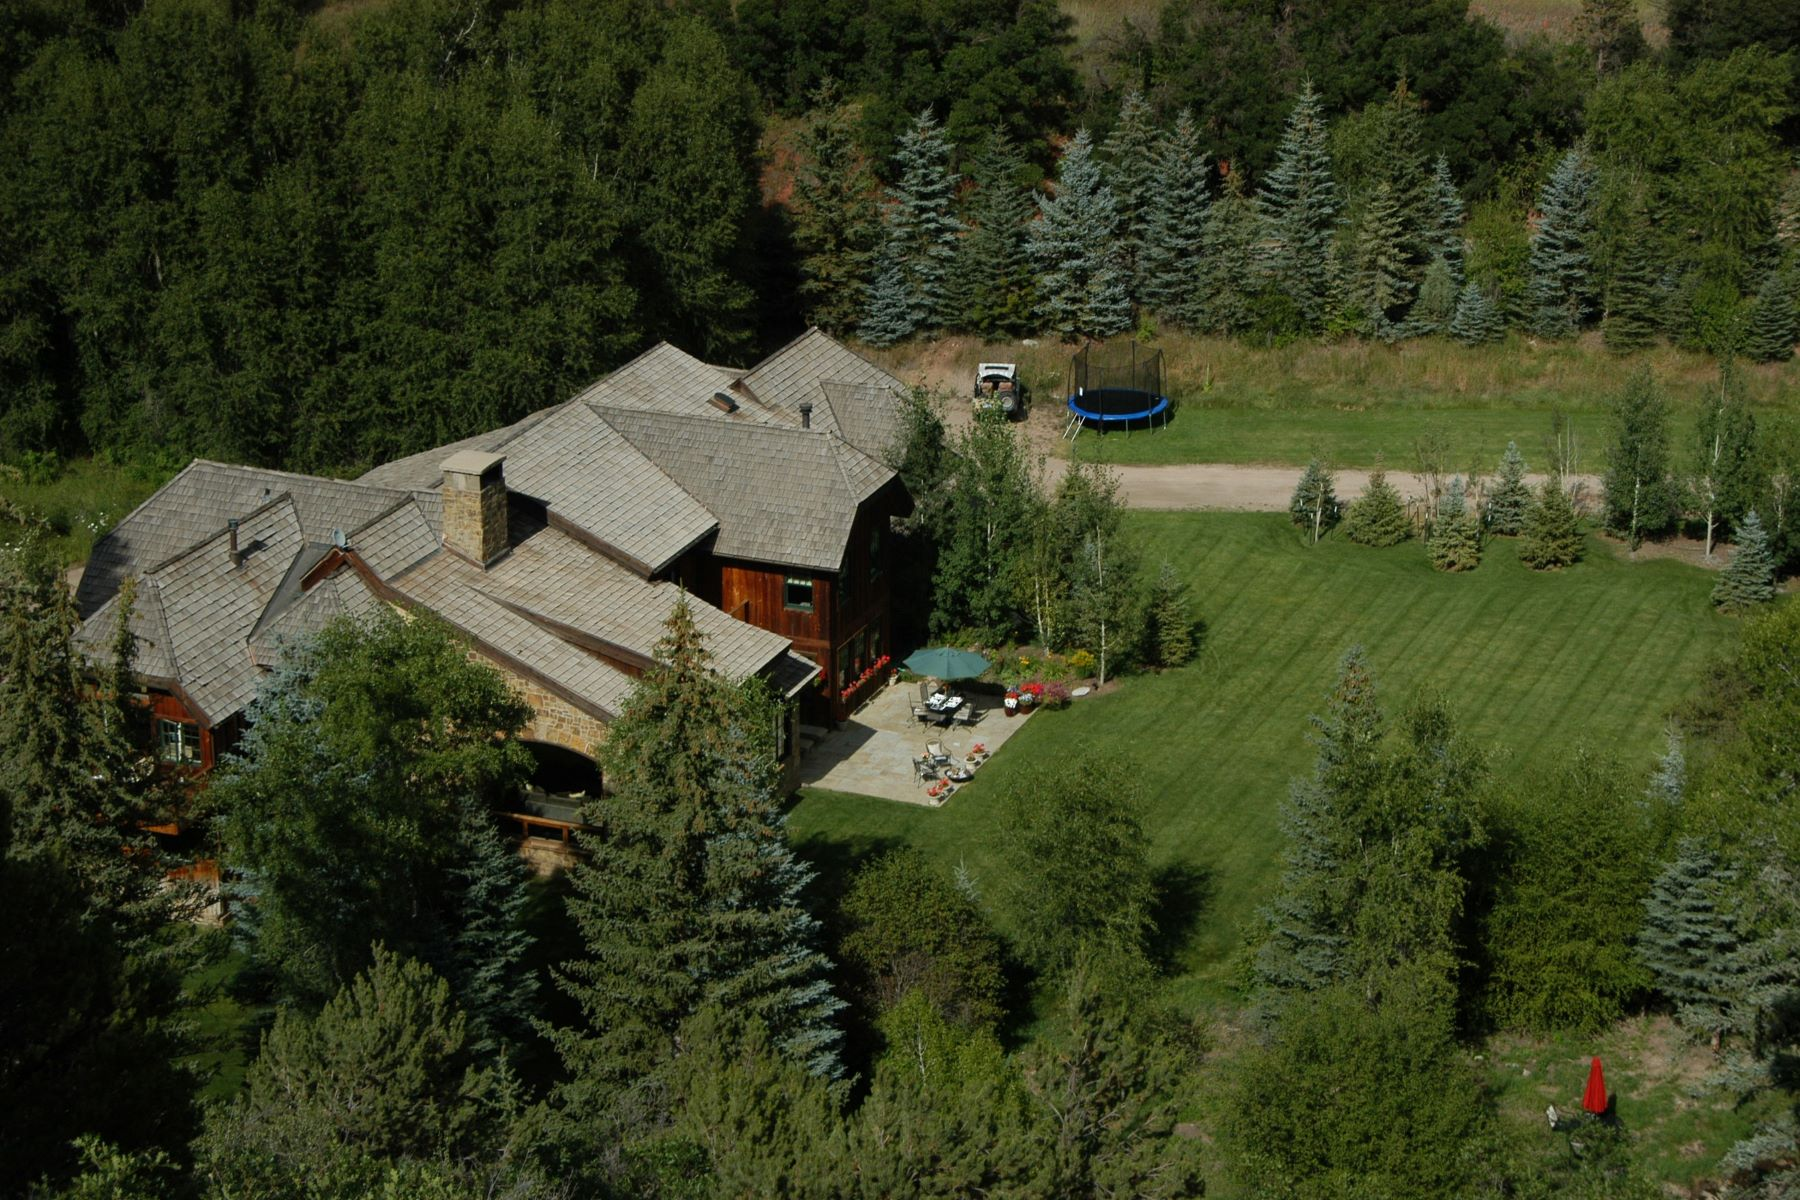 Single Family Home for Sale at Snowmass Creek Paradise 333 Snowmass Creek Road Snowmass, Colorado, 81654 United States